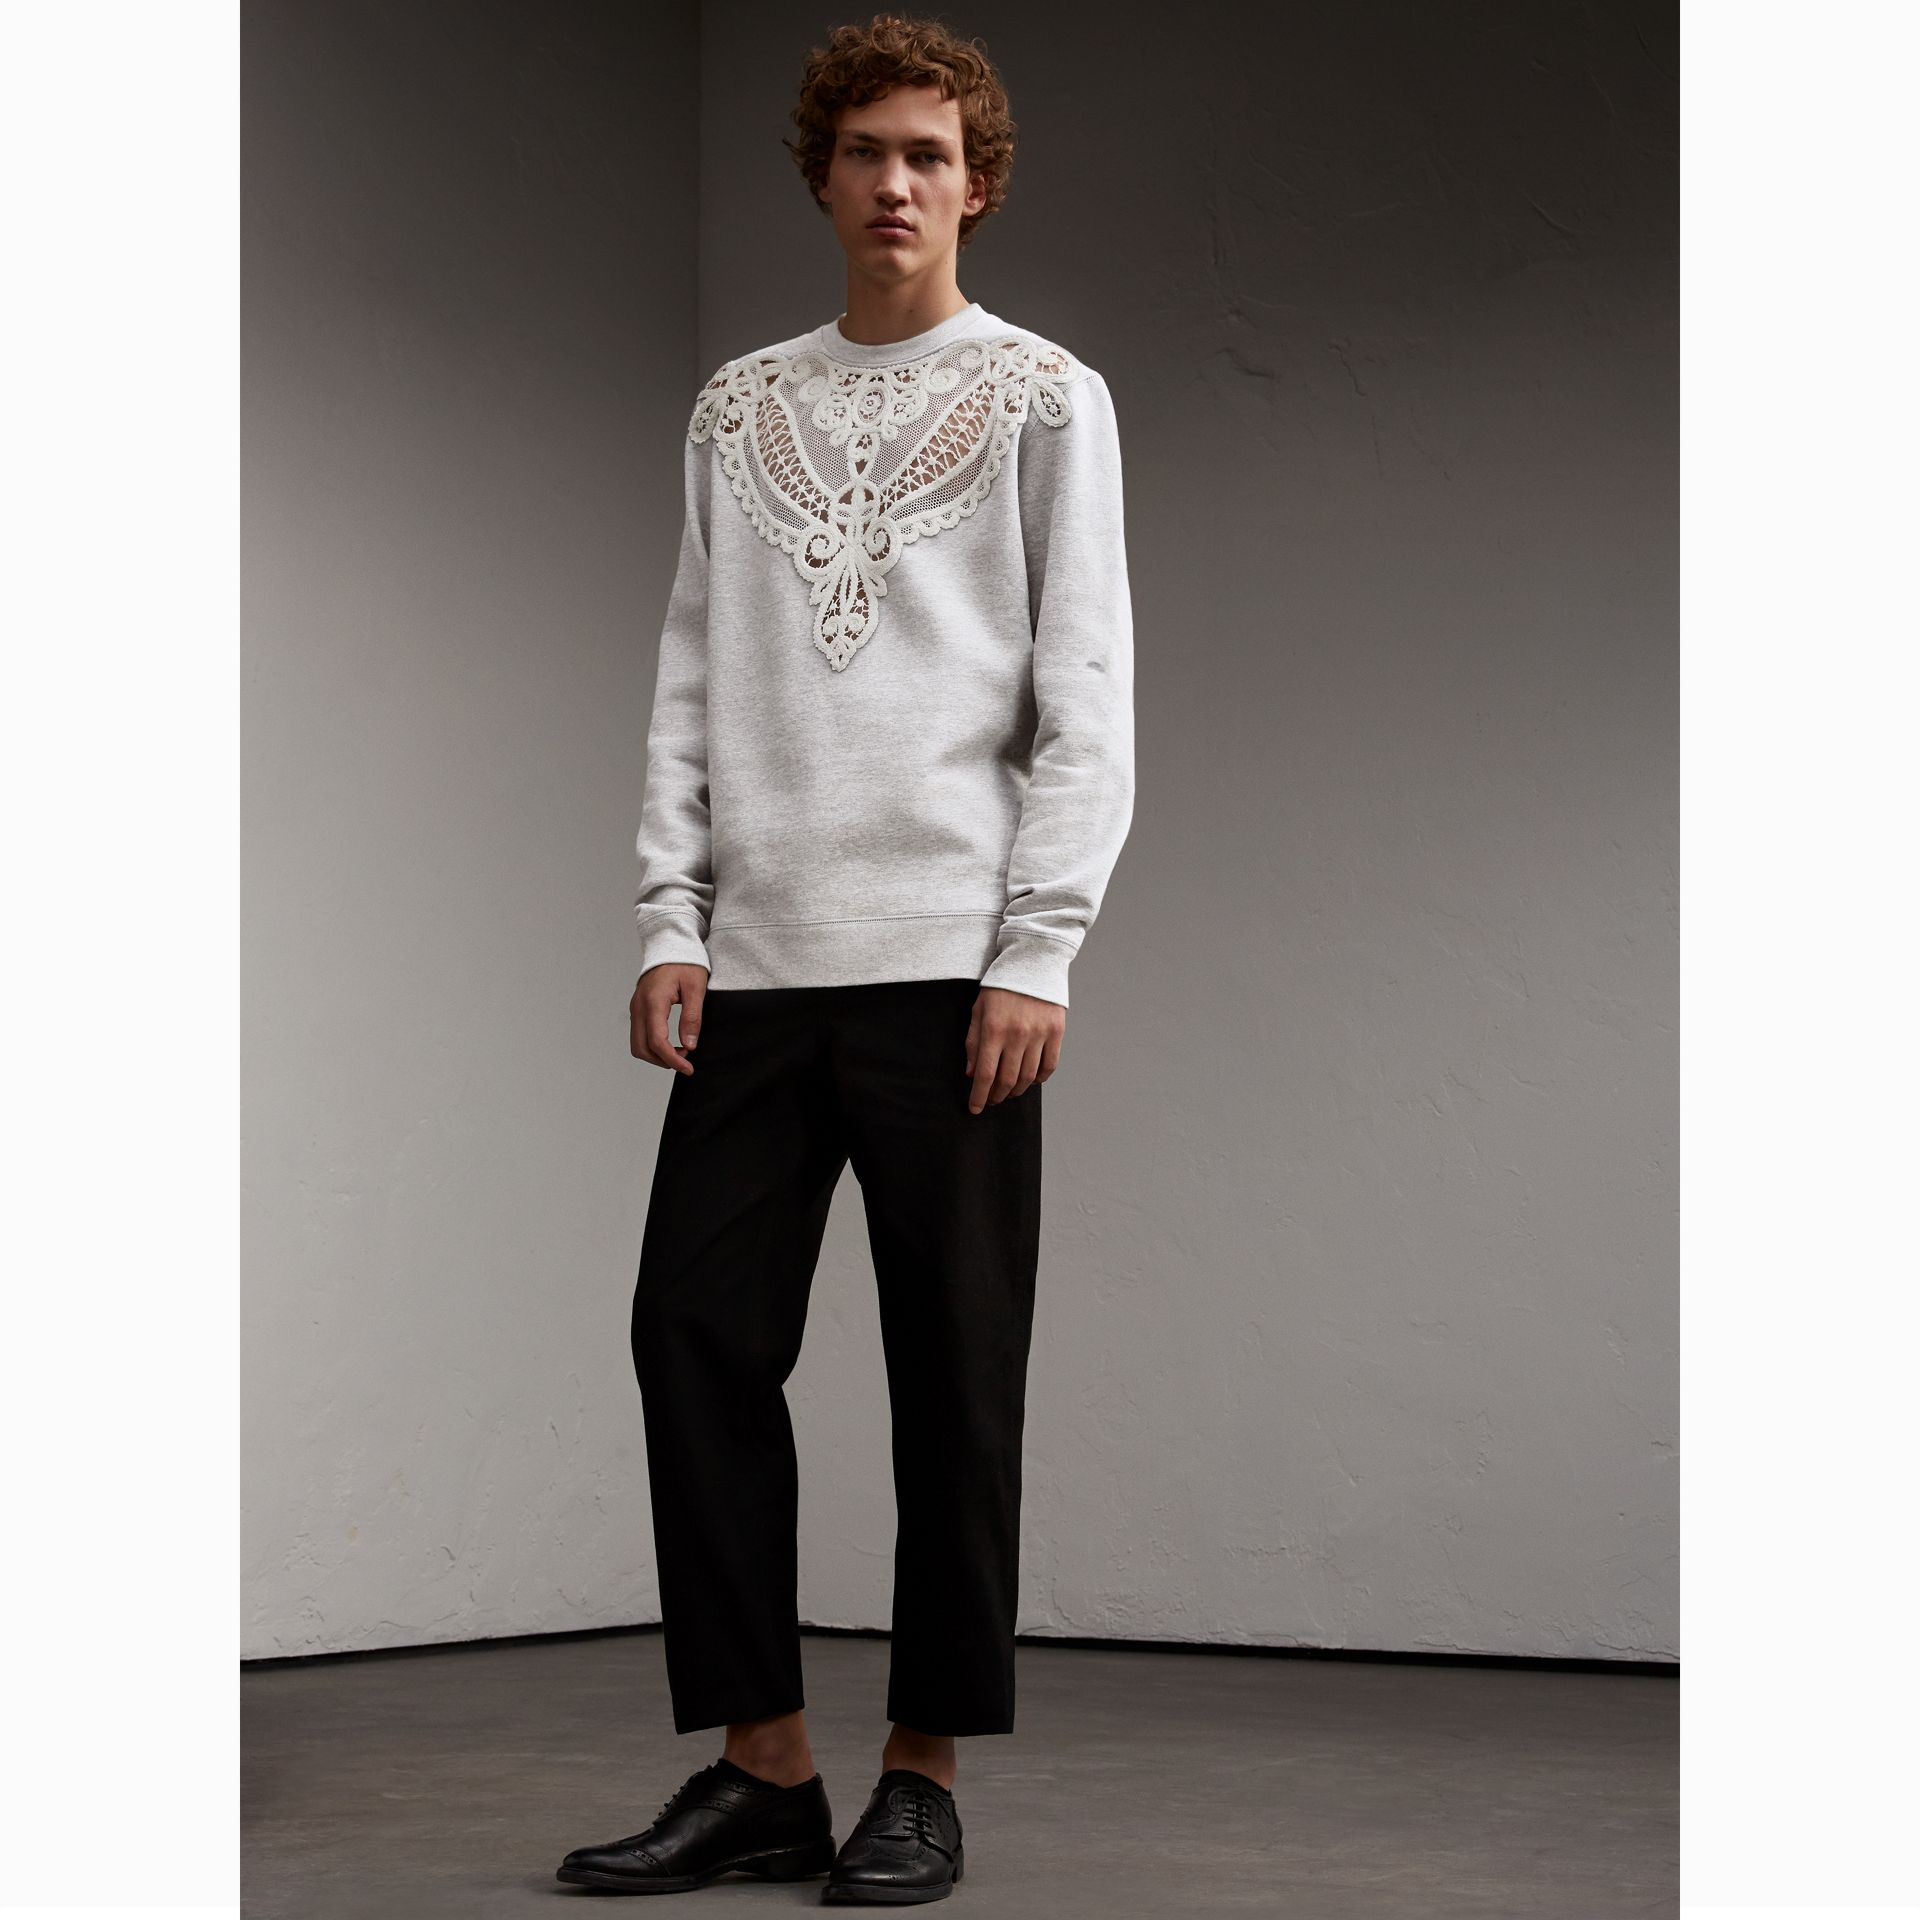 Unisex Lace Cutwork Sweatshirt in Light Grey Melange - Women | Burberry Singapore - gallery image 3